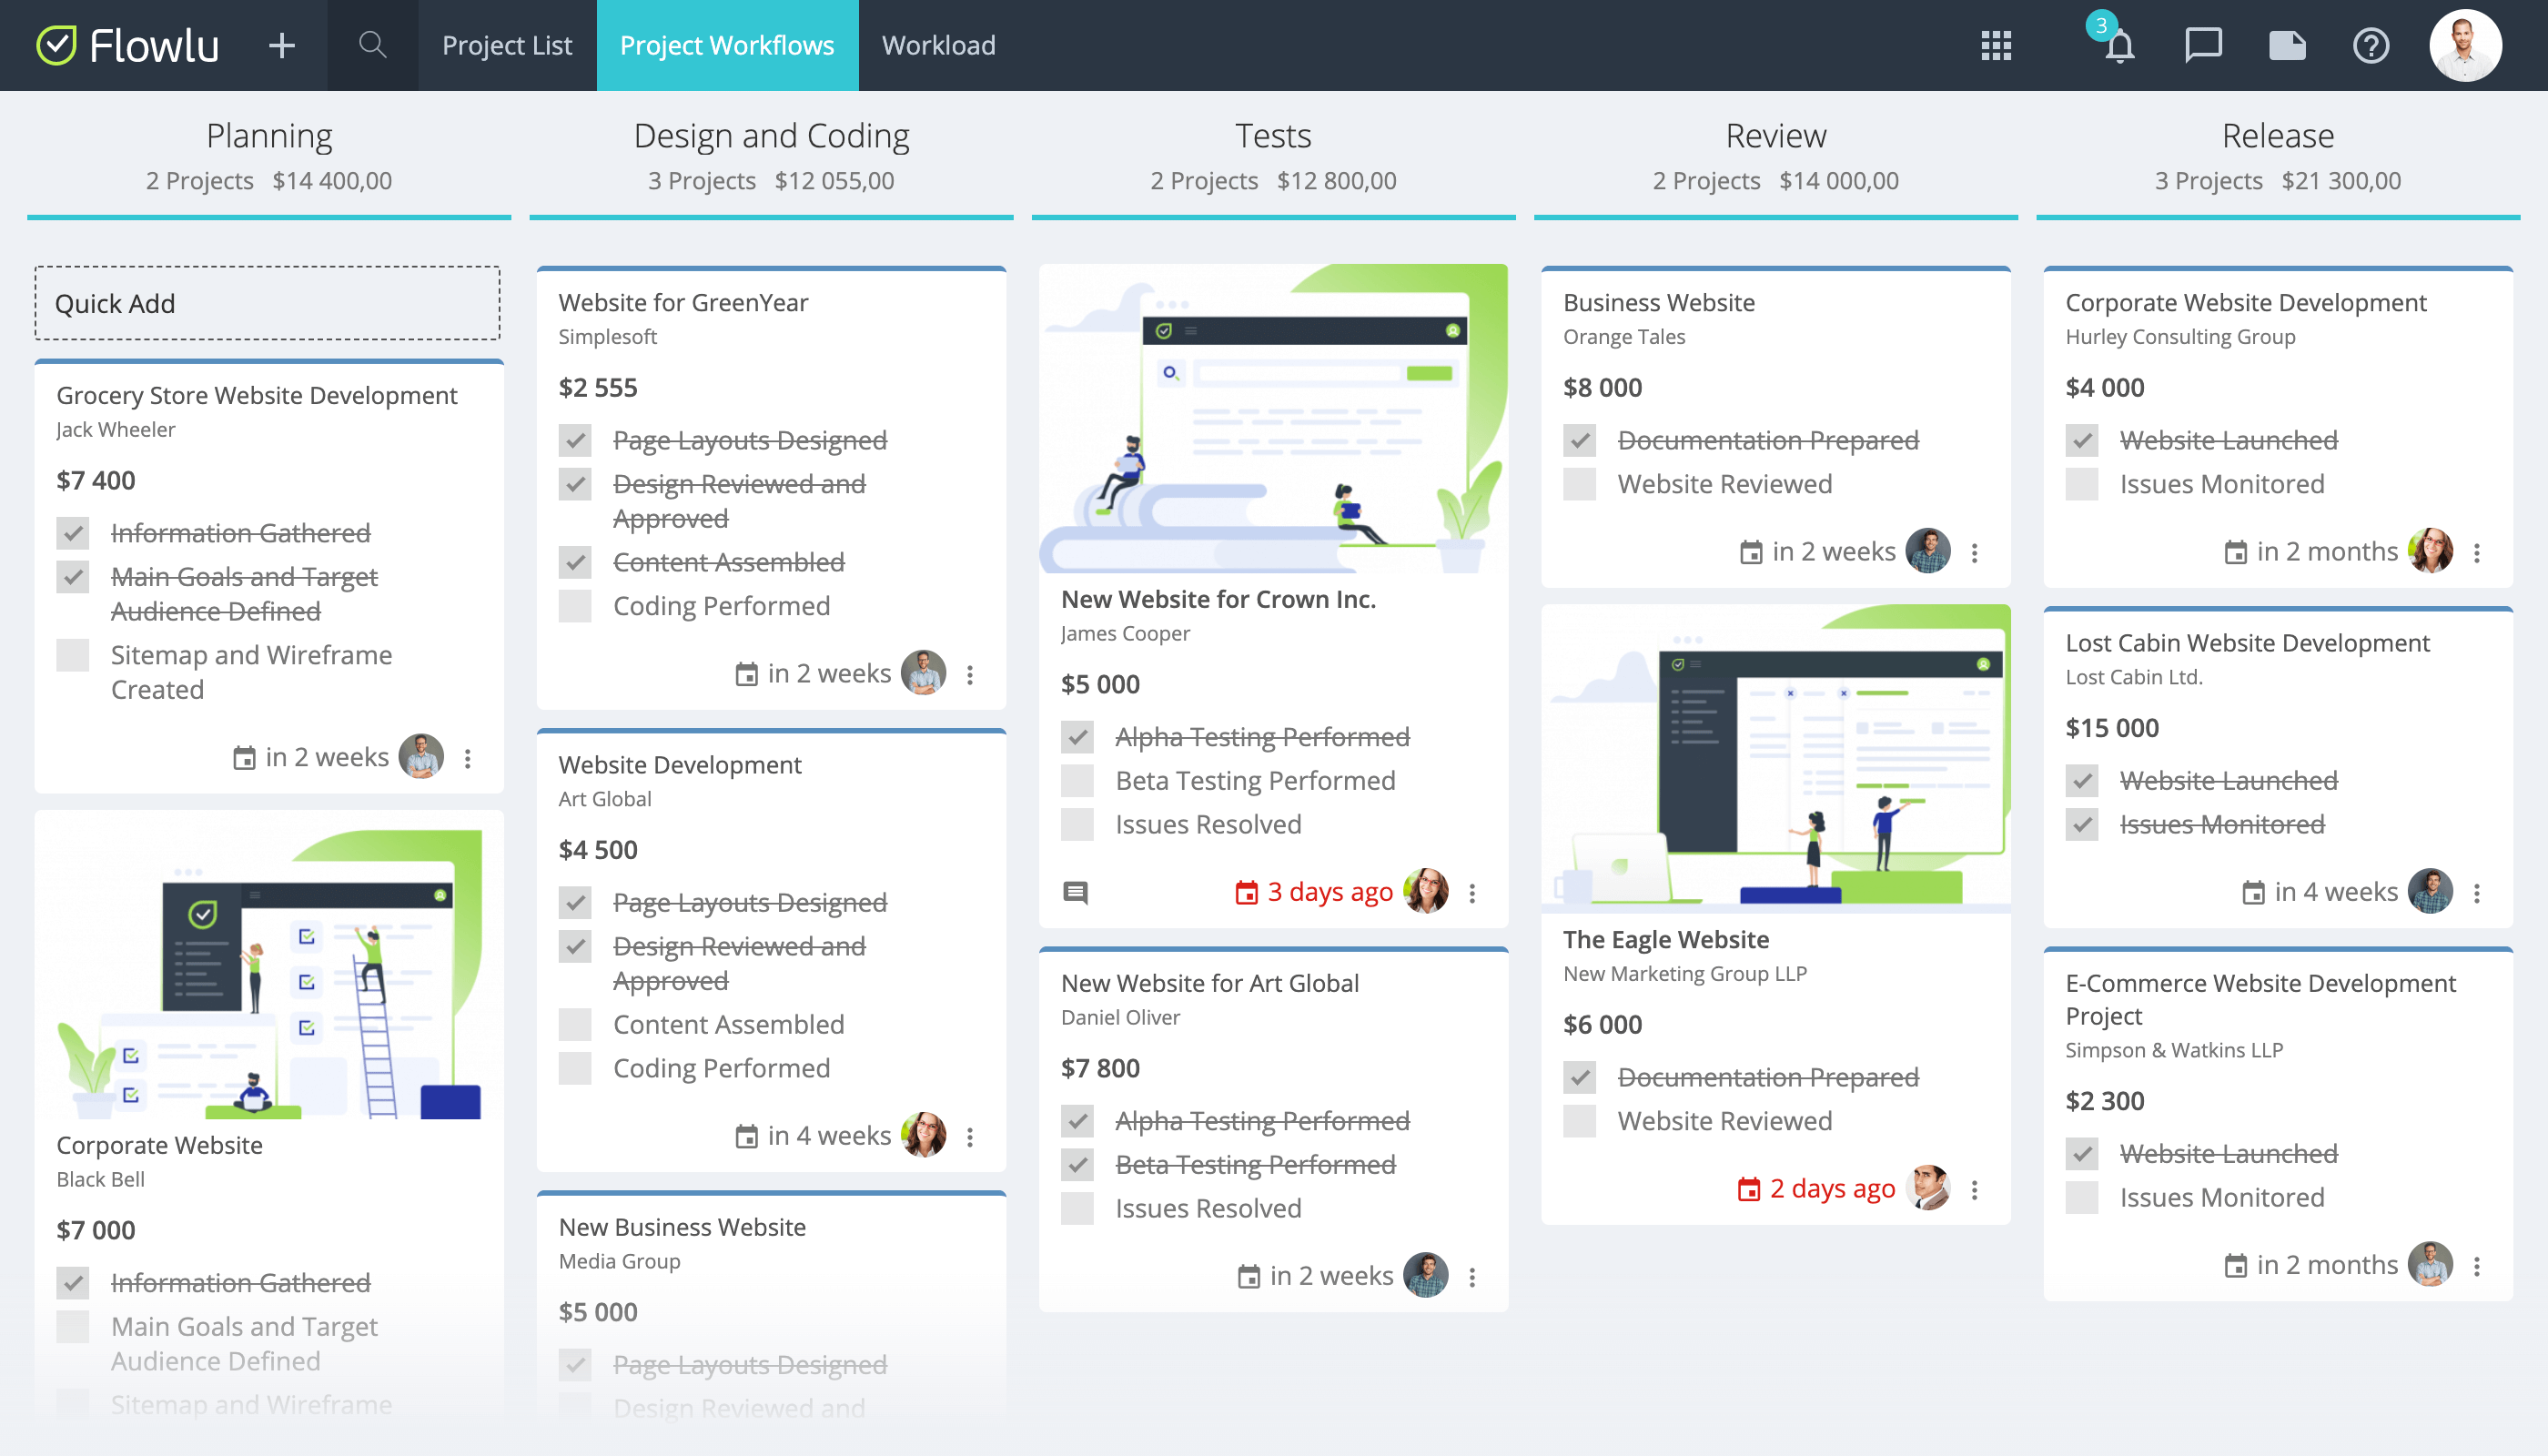 Project Workflows